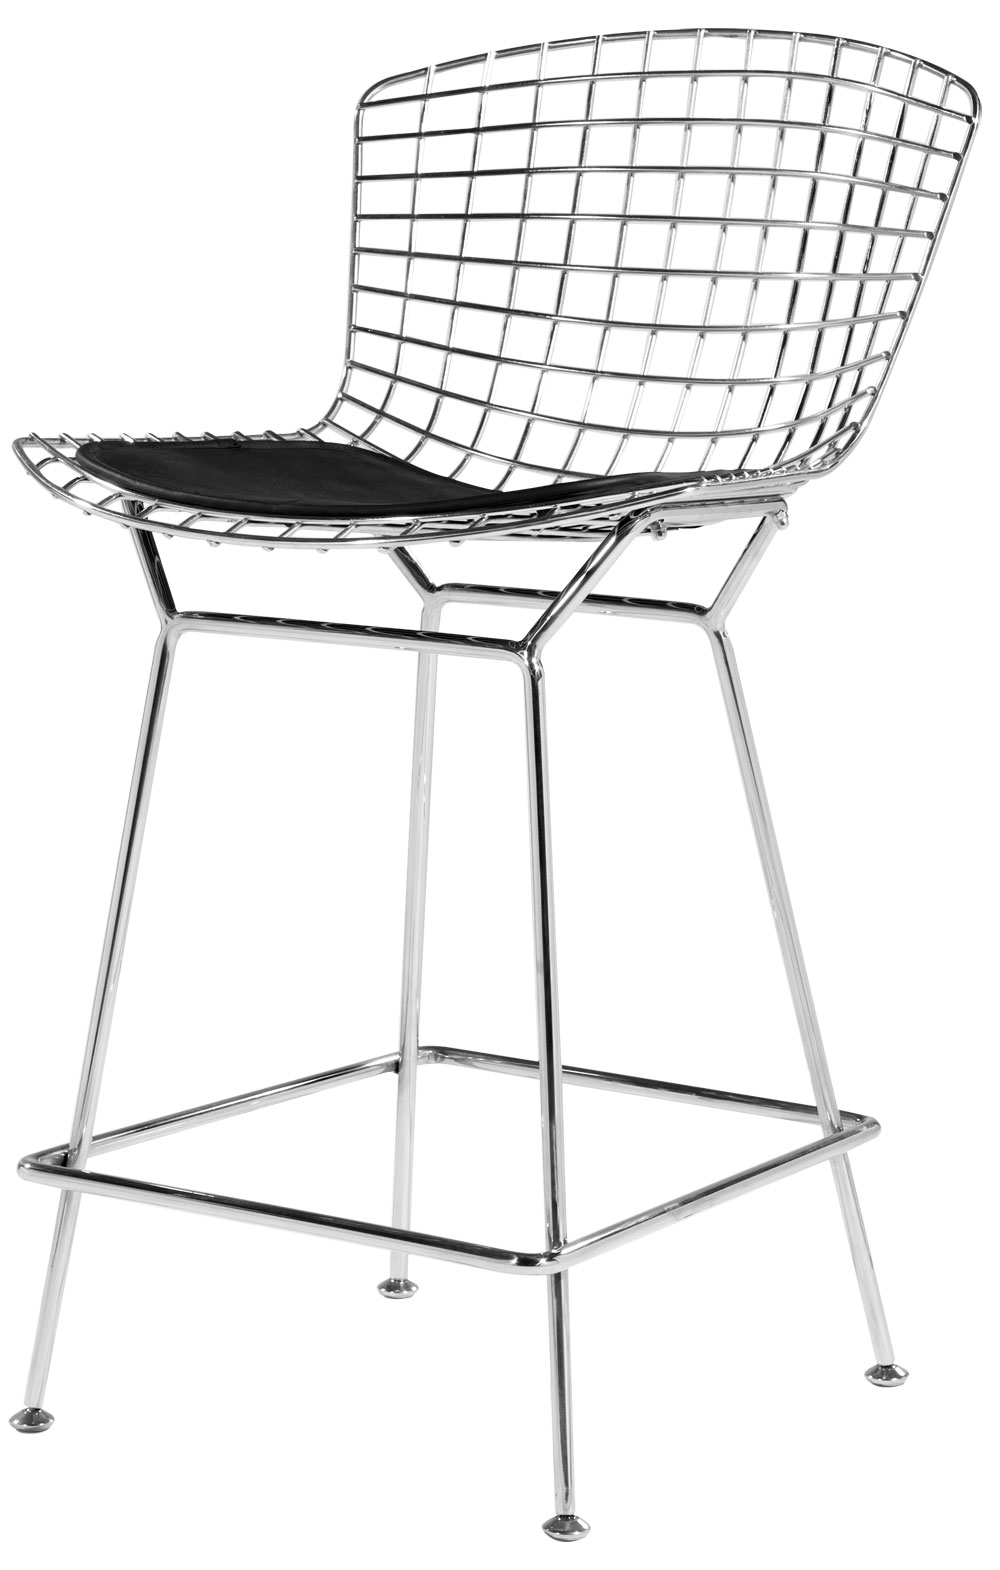 Designapplause bertoia bar stool harry bertoia - Tabouret bar bertoia ...